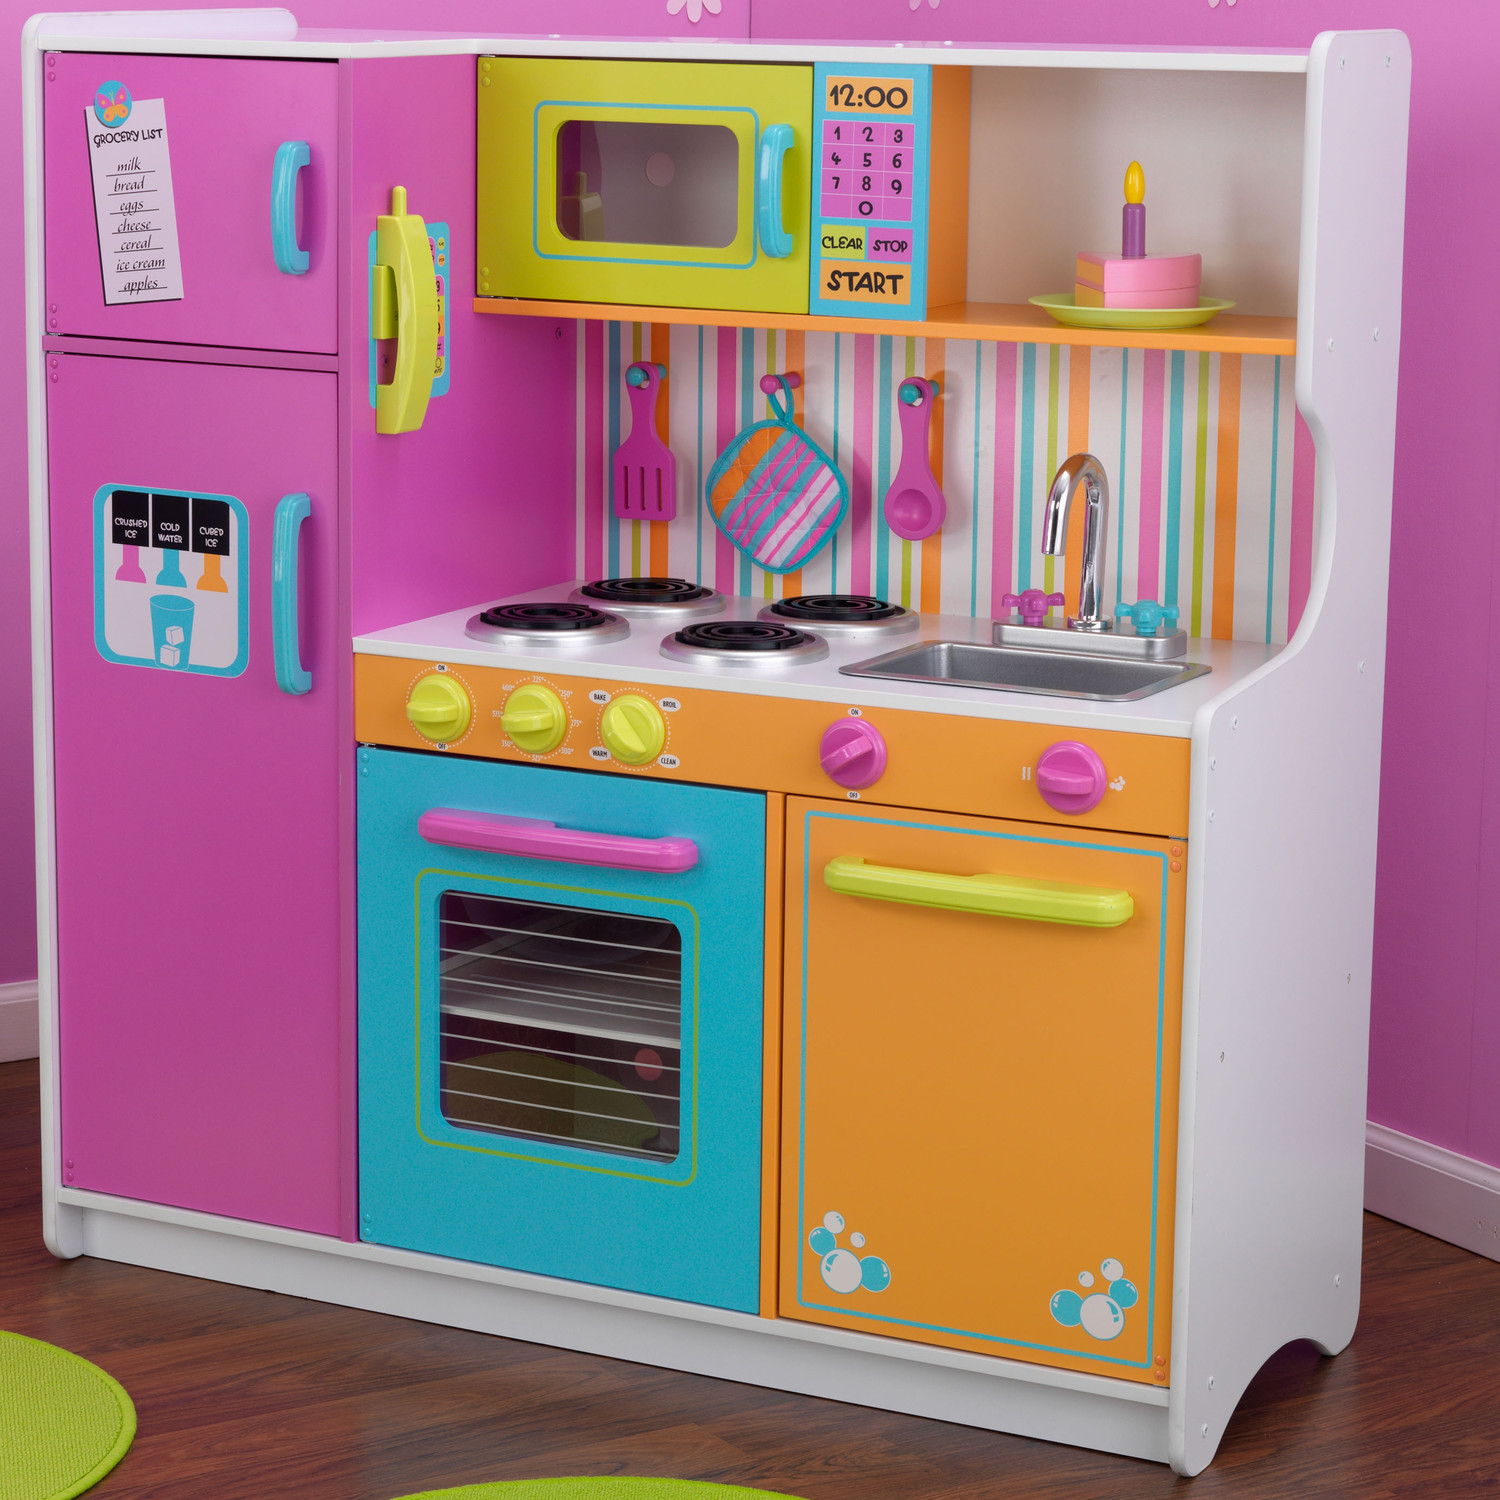 Indigo canada toy sale save 59 off kidkraft deluxe for Toddler kitchen set